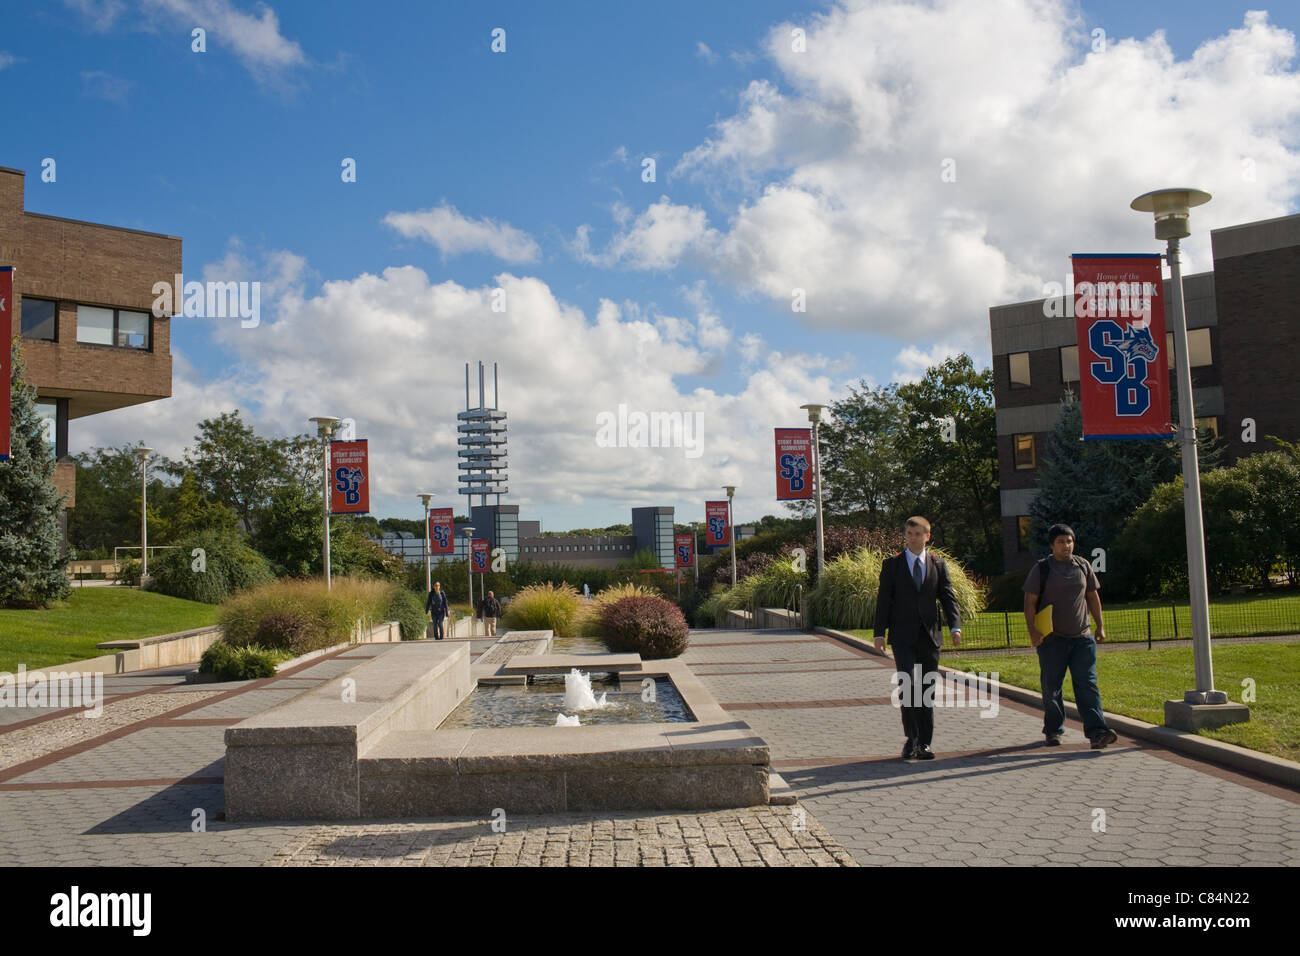 Students going to class, SUNY Stony Brook, North Shore, Long Island, New York - Stock Image